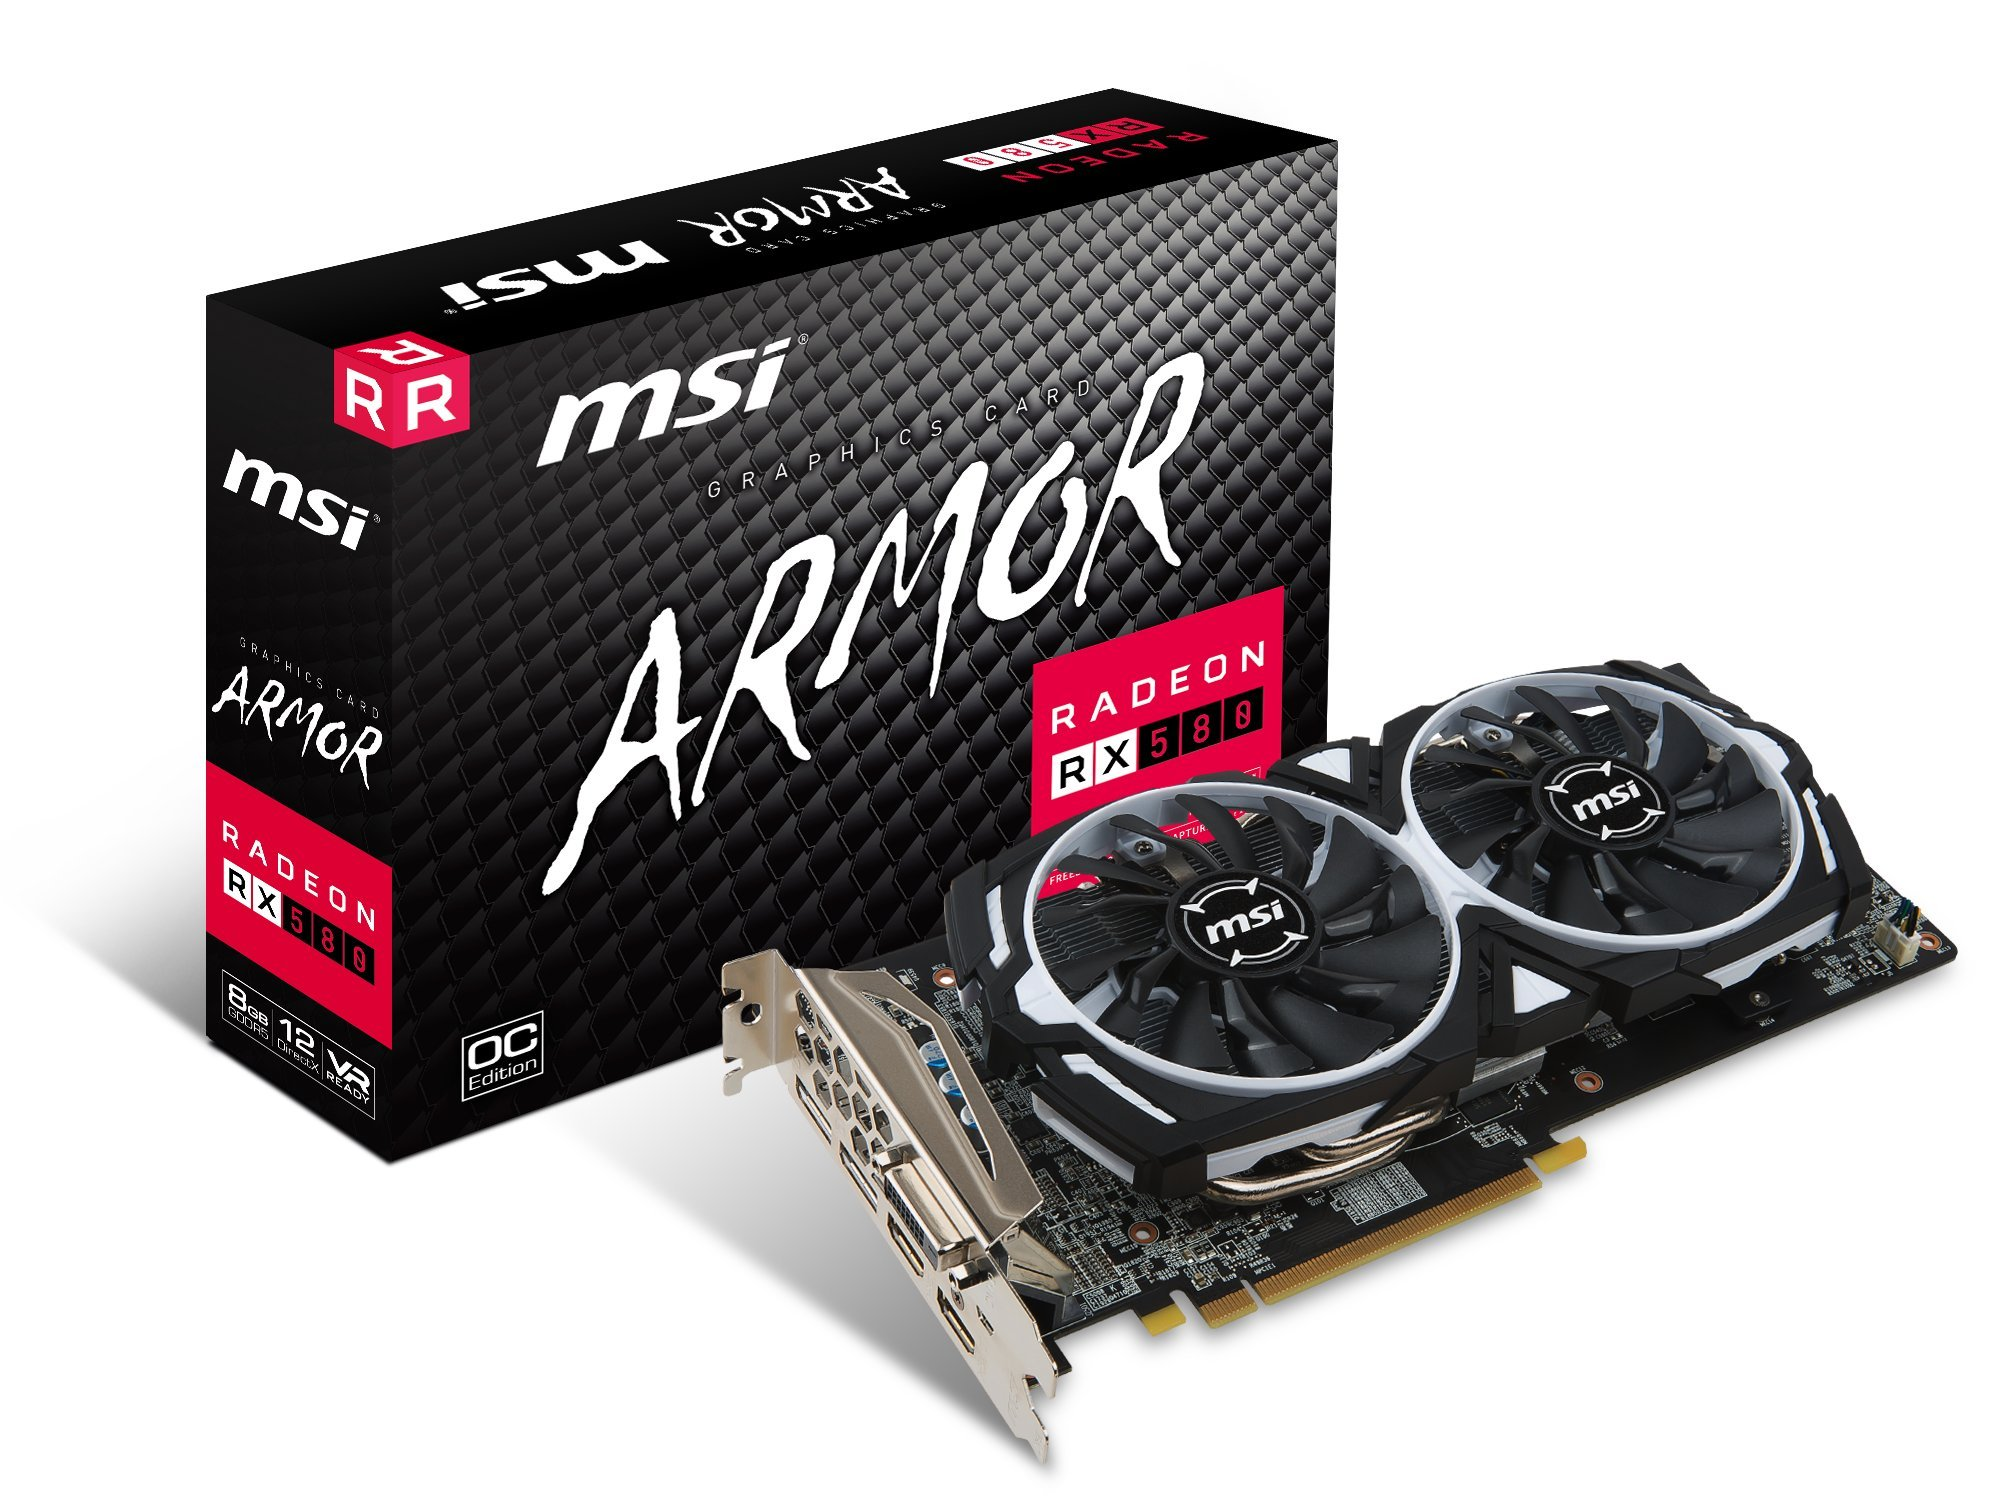 MSI VGA Graphic Cards RX 580 ARMOR 8G OC by MSI